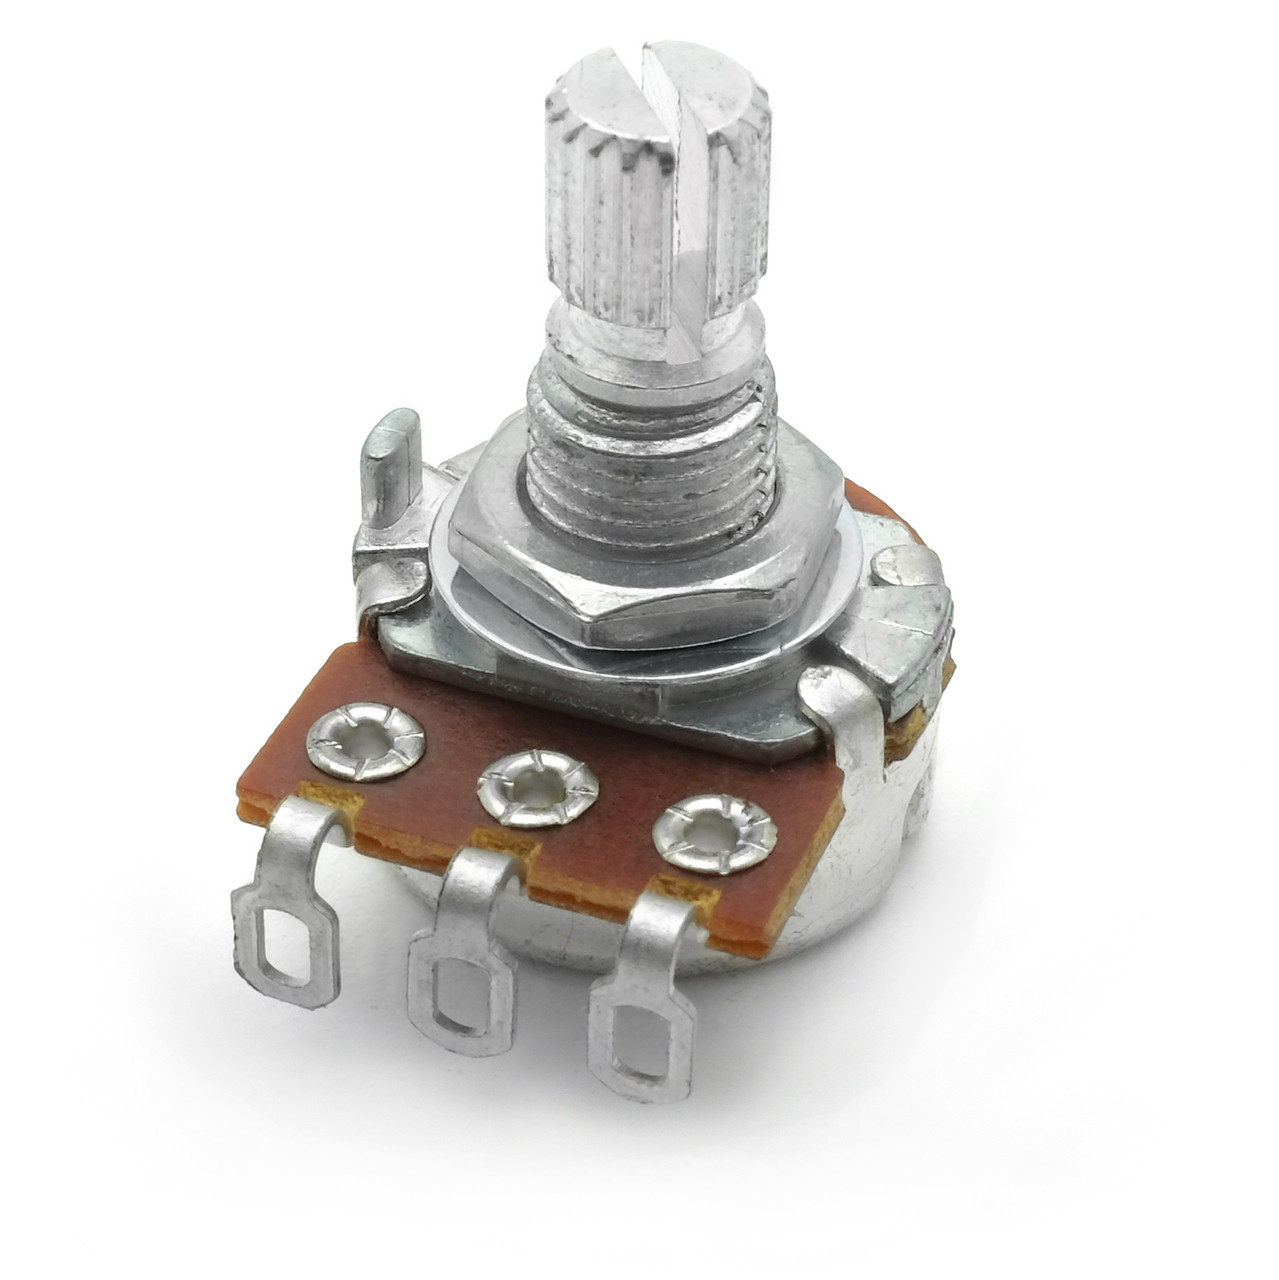 Awe Inspiring 16Mm Potentiometer For Guitar Pedals 18T Knurled Shaft Wiring Cloud Strefoxcilixyz